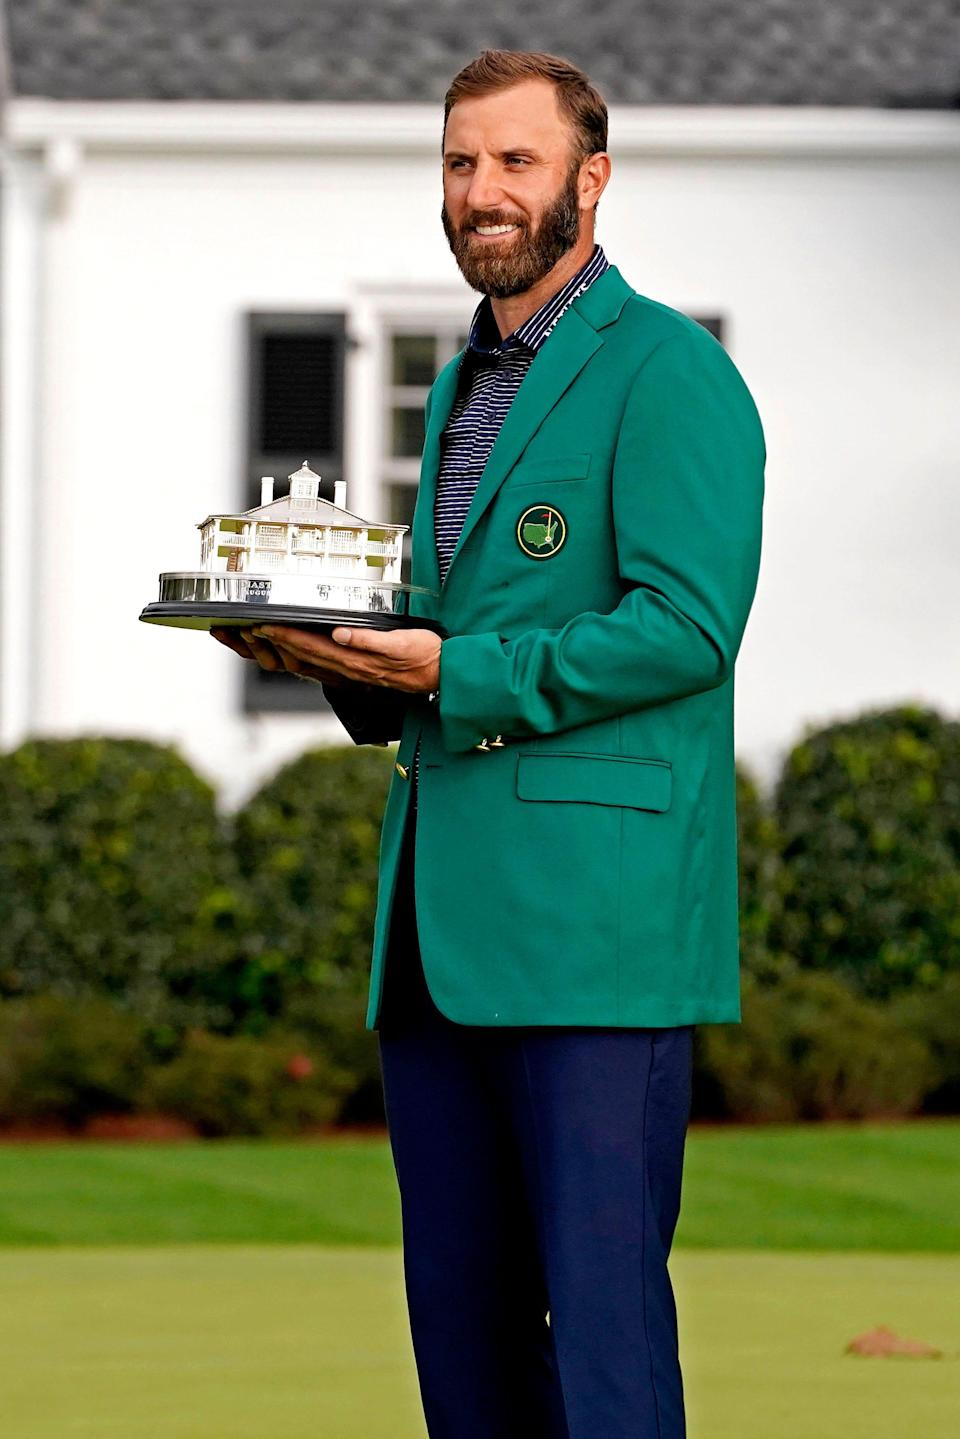 Dustin Johnson celebrates after winning the 2020 Masters.